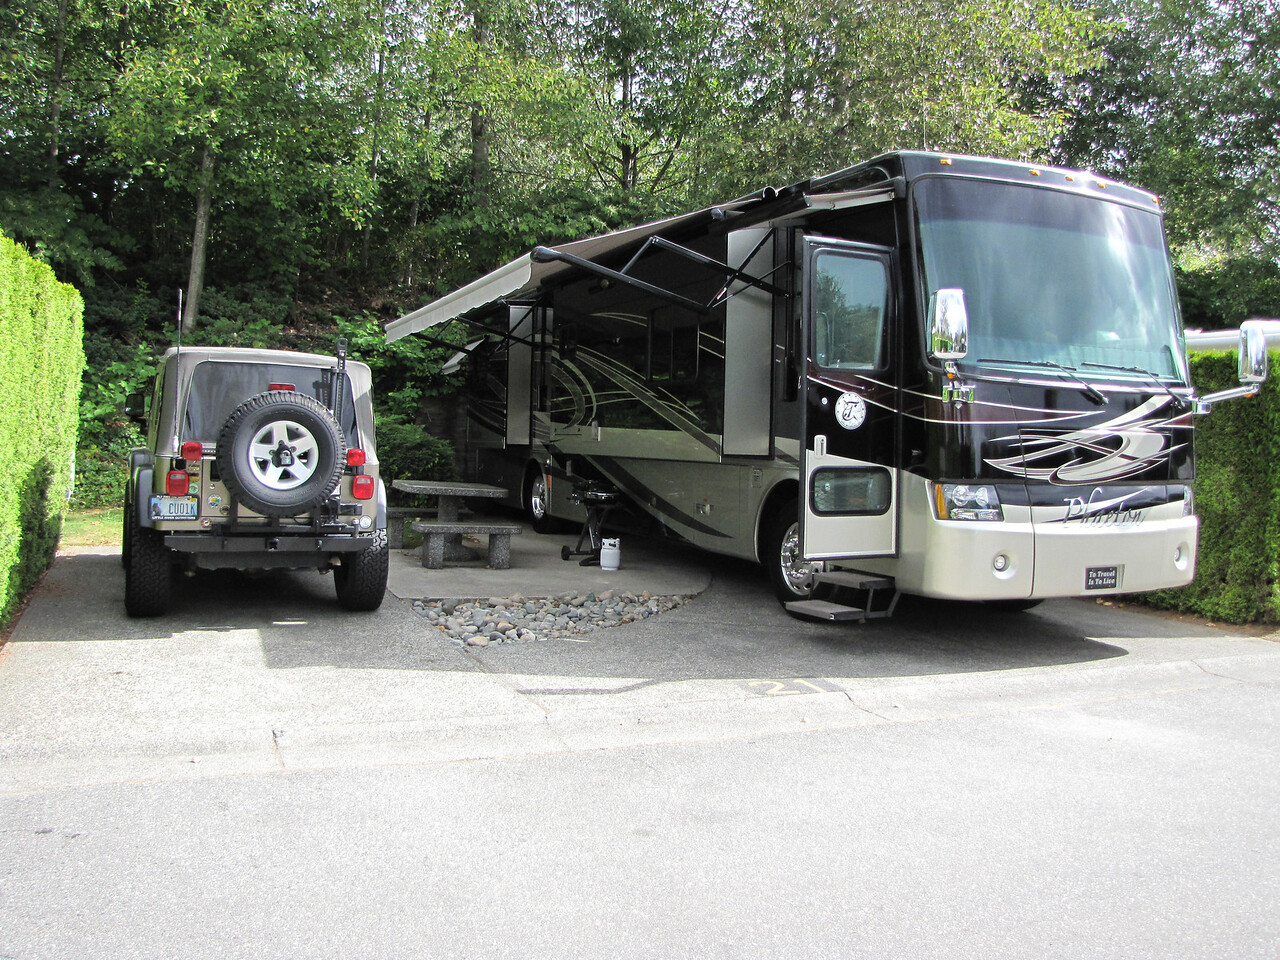 This is where we left our rig while we were on our 15 day John Hall's Alaskan Tour.  We were in Burnaby, British Columbia, just outside Vancouver.